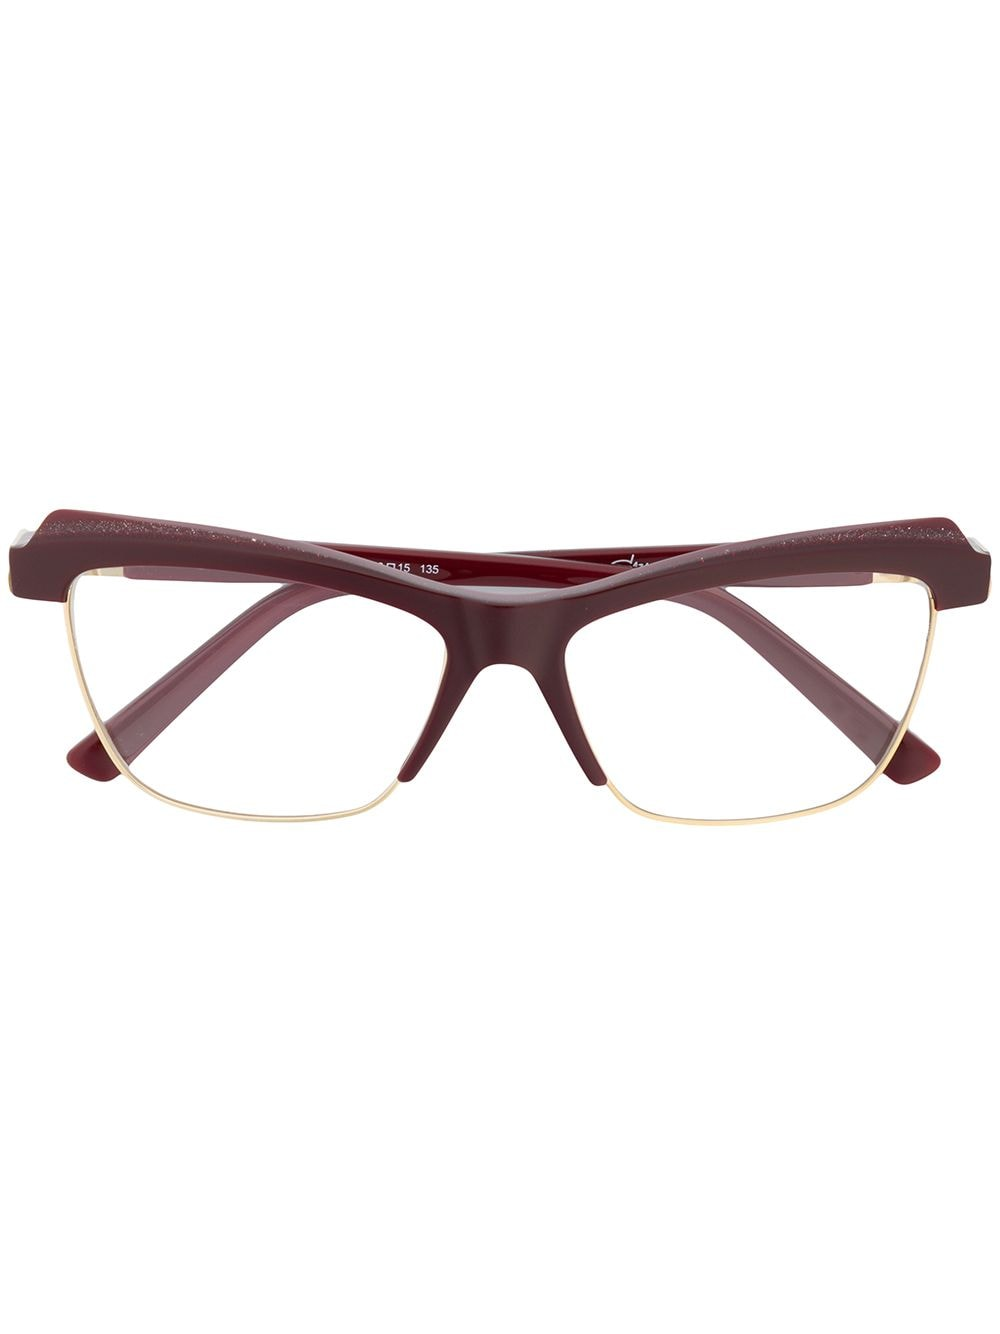 Cazal Cat-Eye-Brille - Rot von Cazal